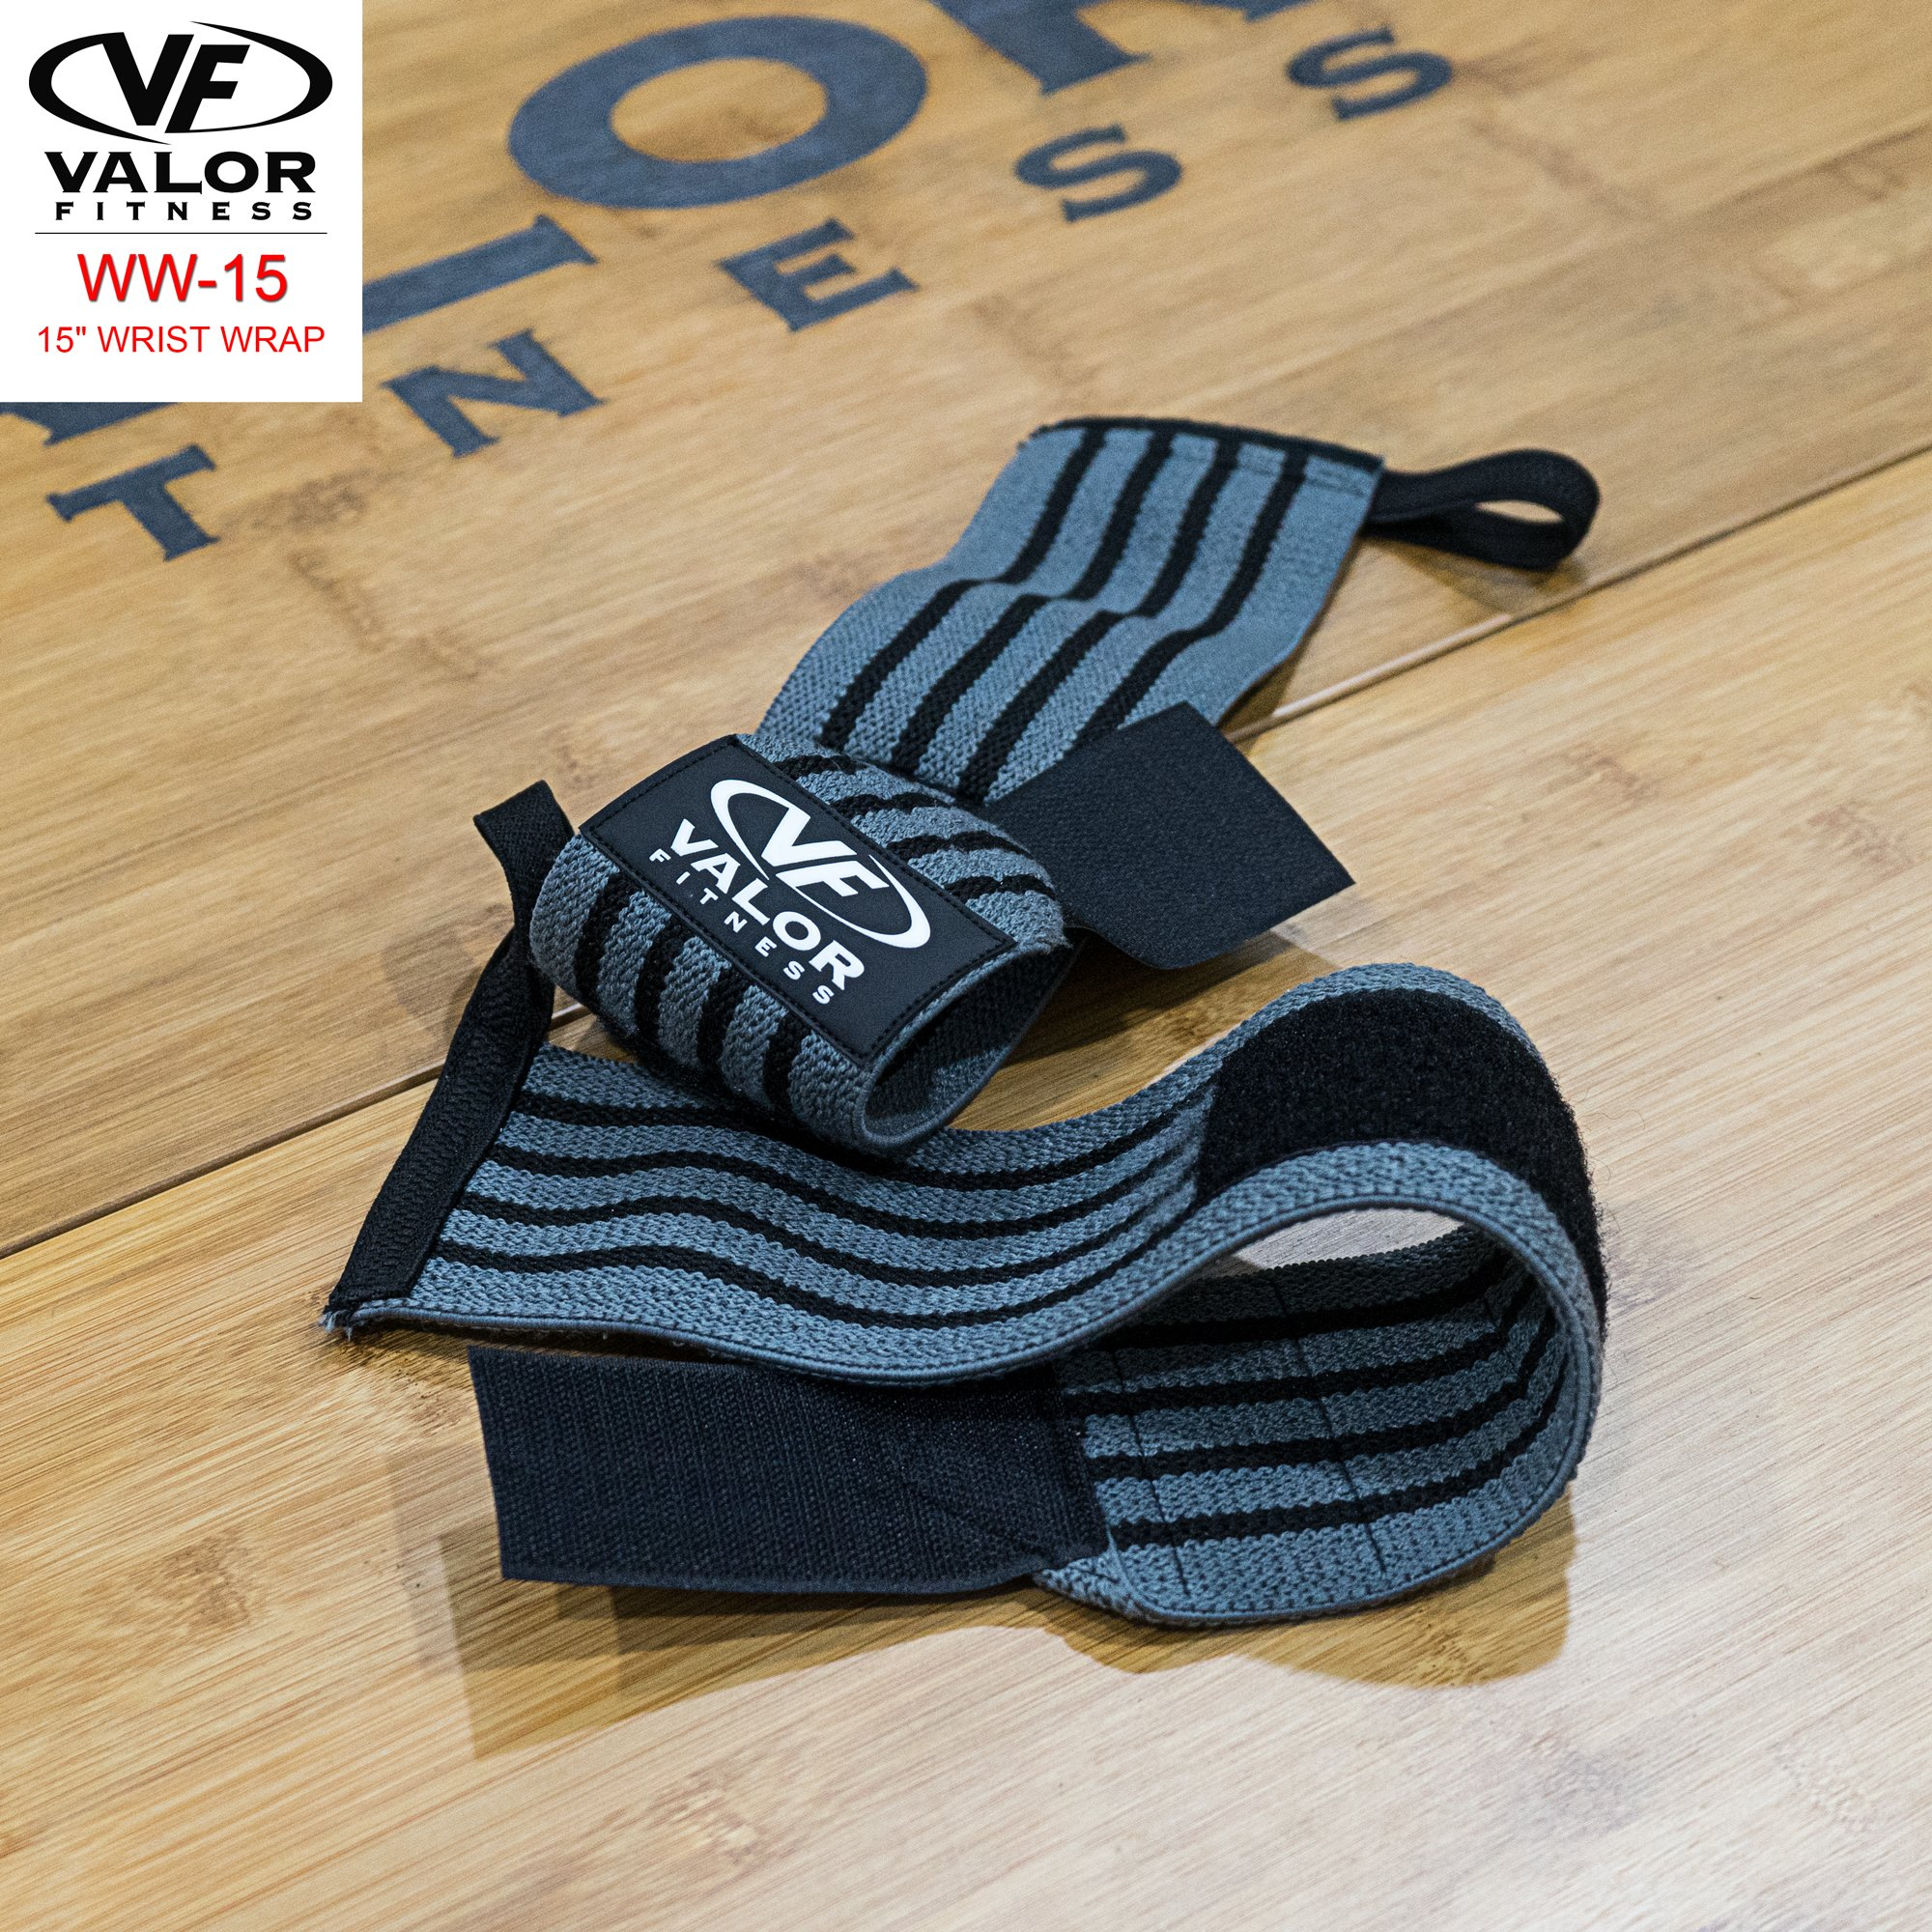 Valor Fitness WW-15 Wrist Wraps